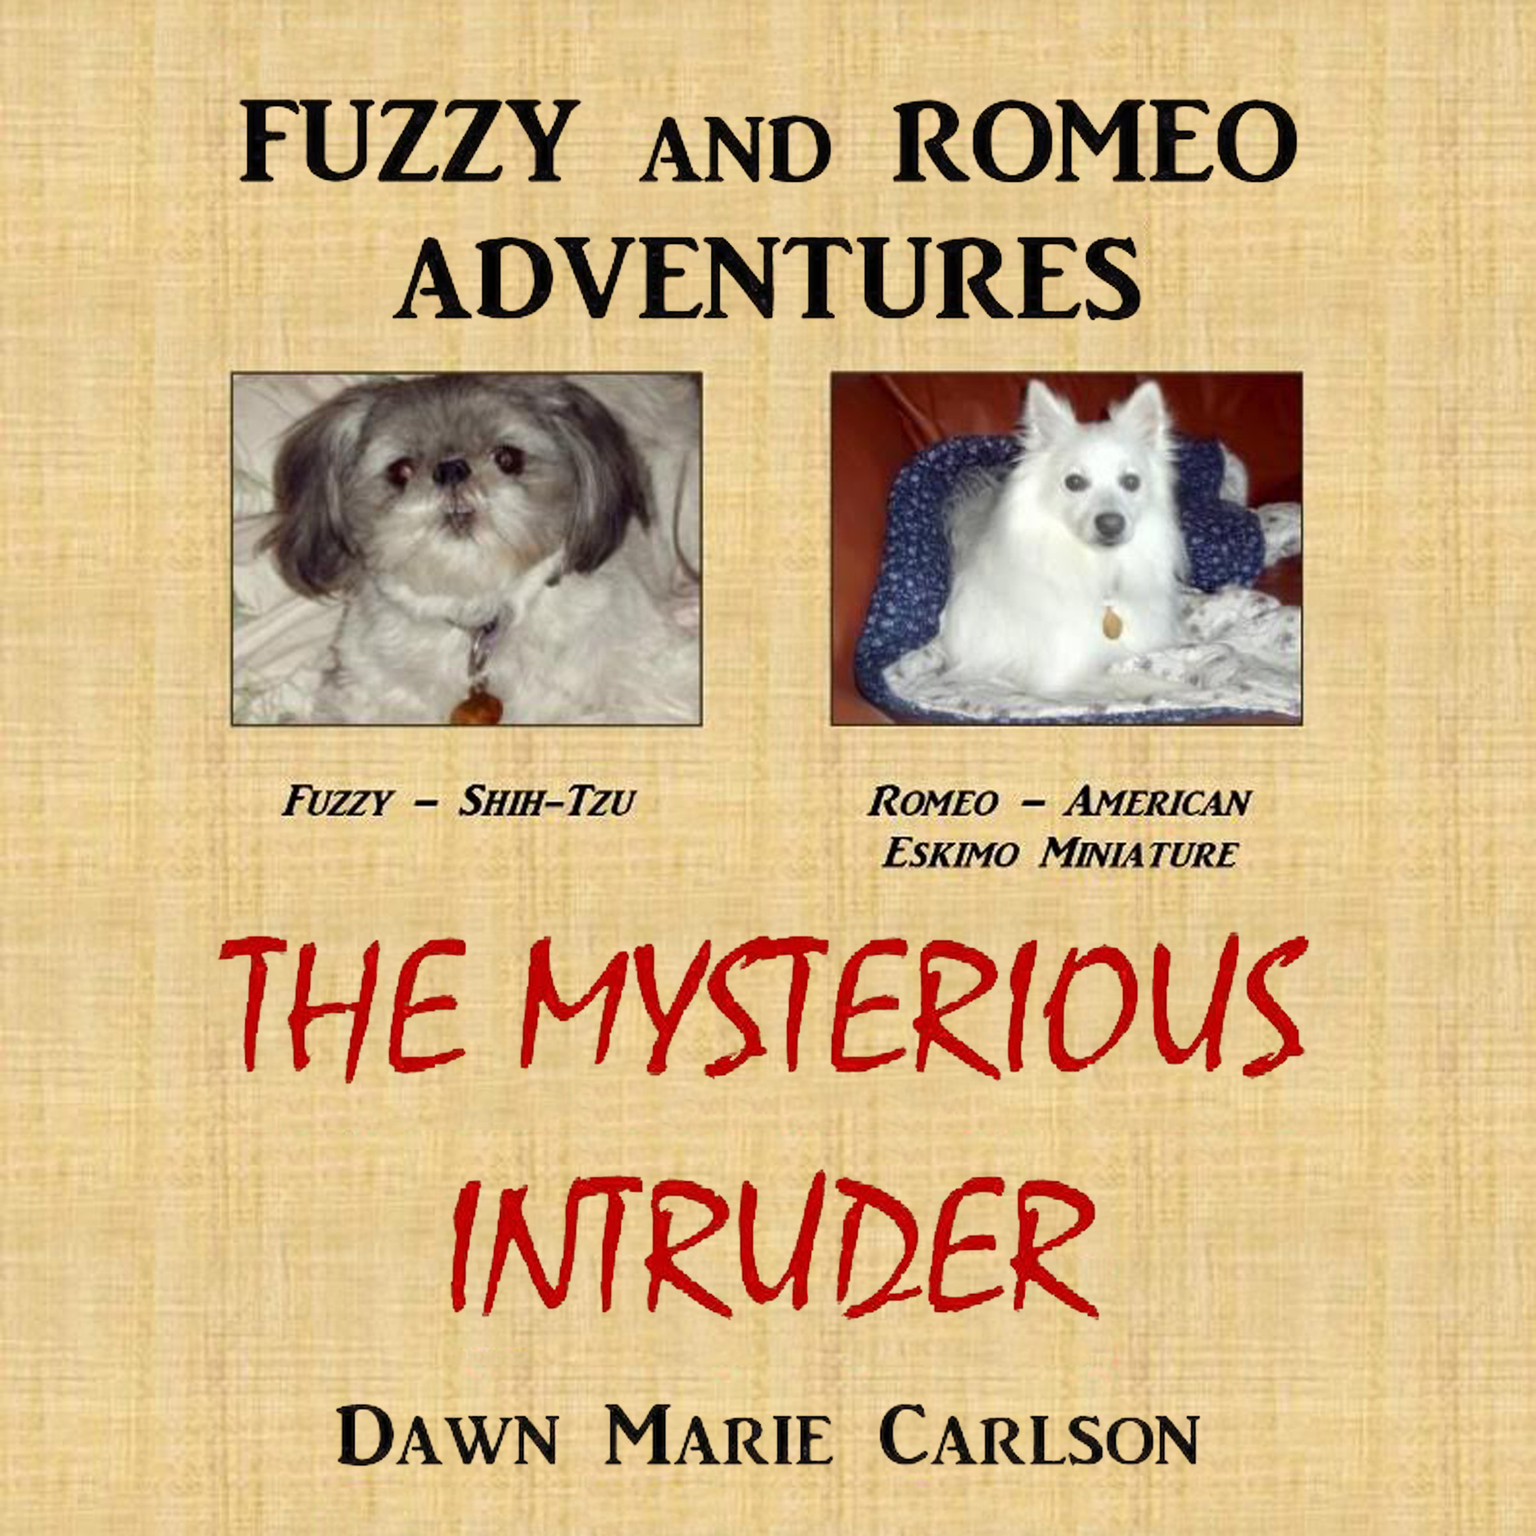 Printable Fuzzy and Romeo Adventures: The Mysterious Intruder Audiobook Cover Art